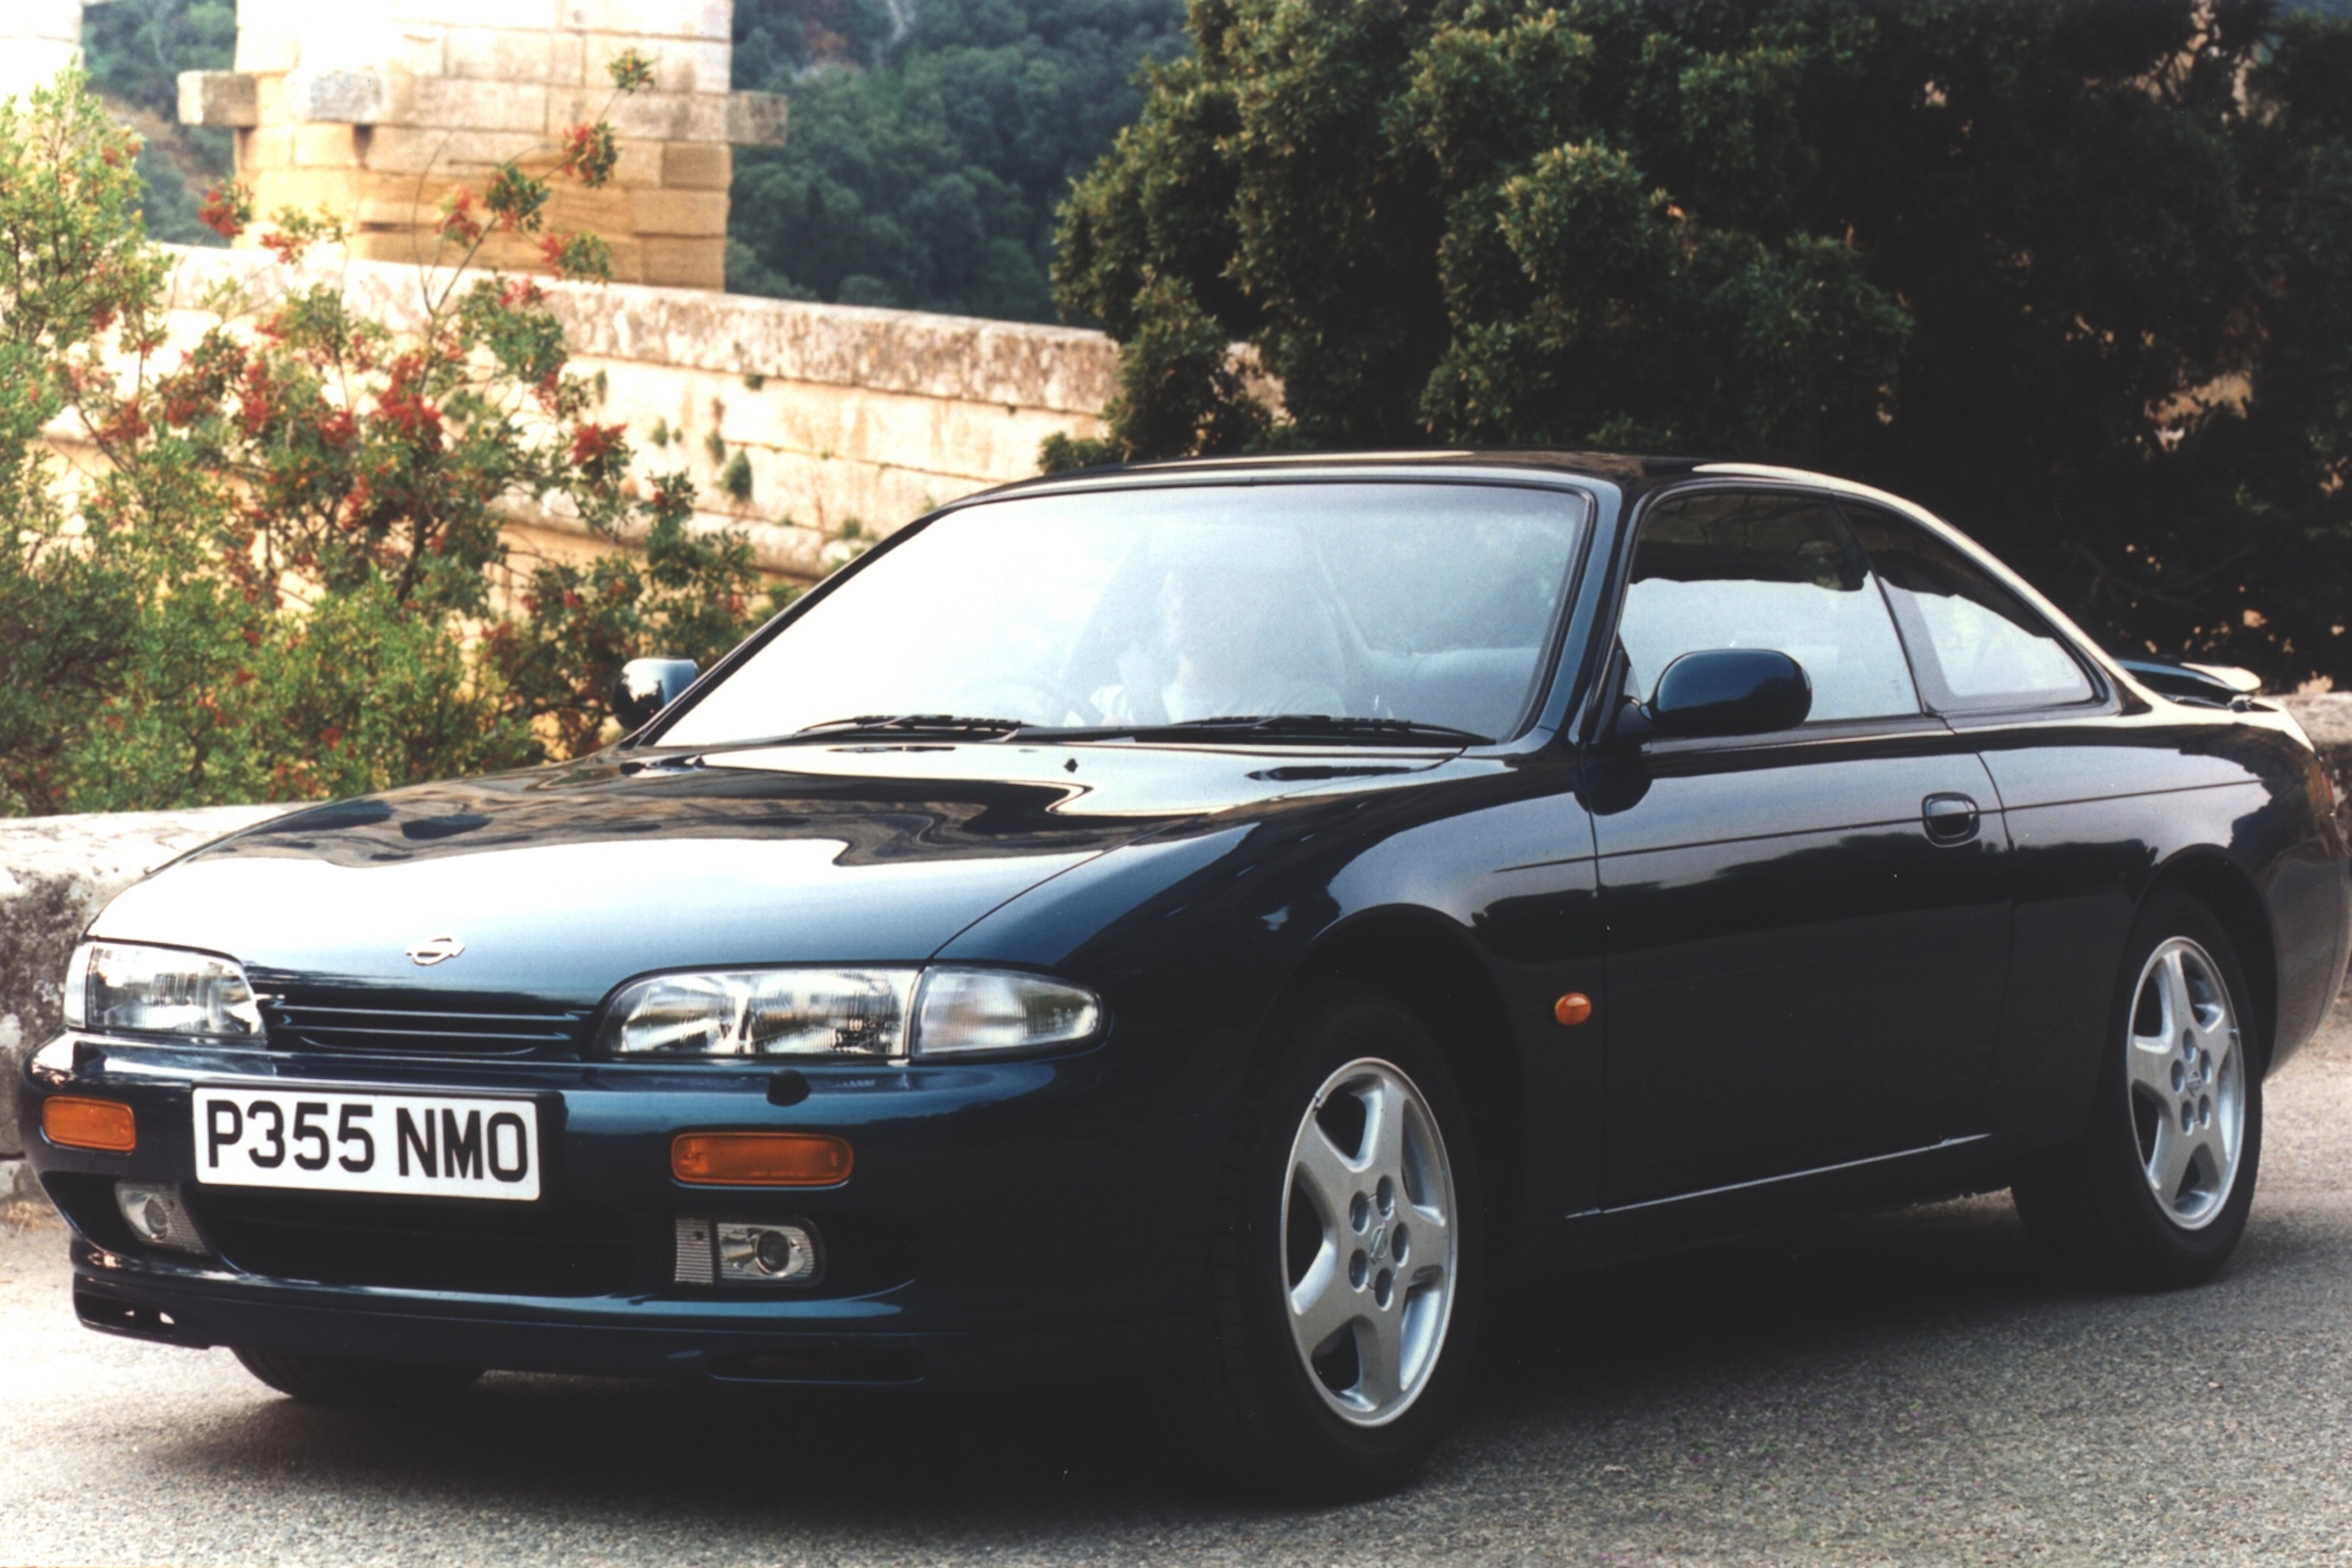 Nissan 200sx Silvia S14 Buying Guide And Review 1995 2000 Auto Express